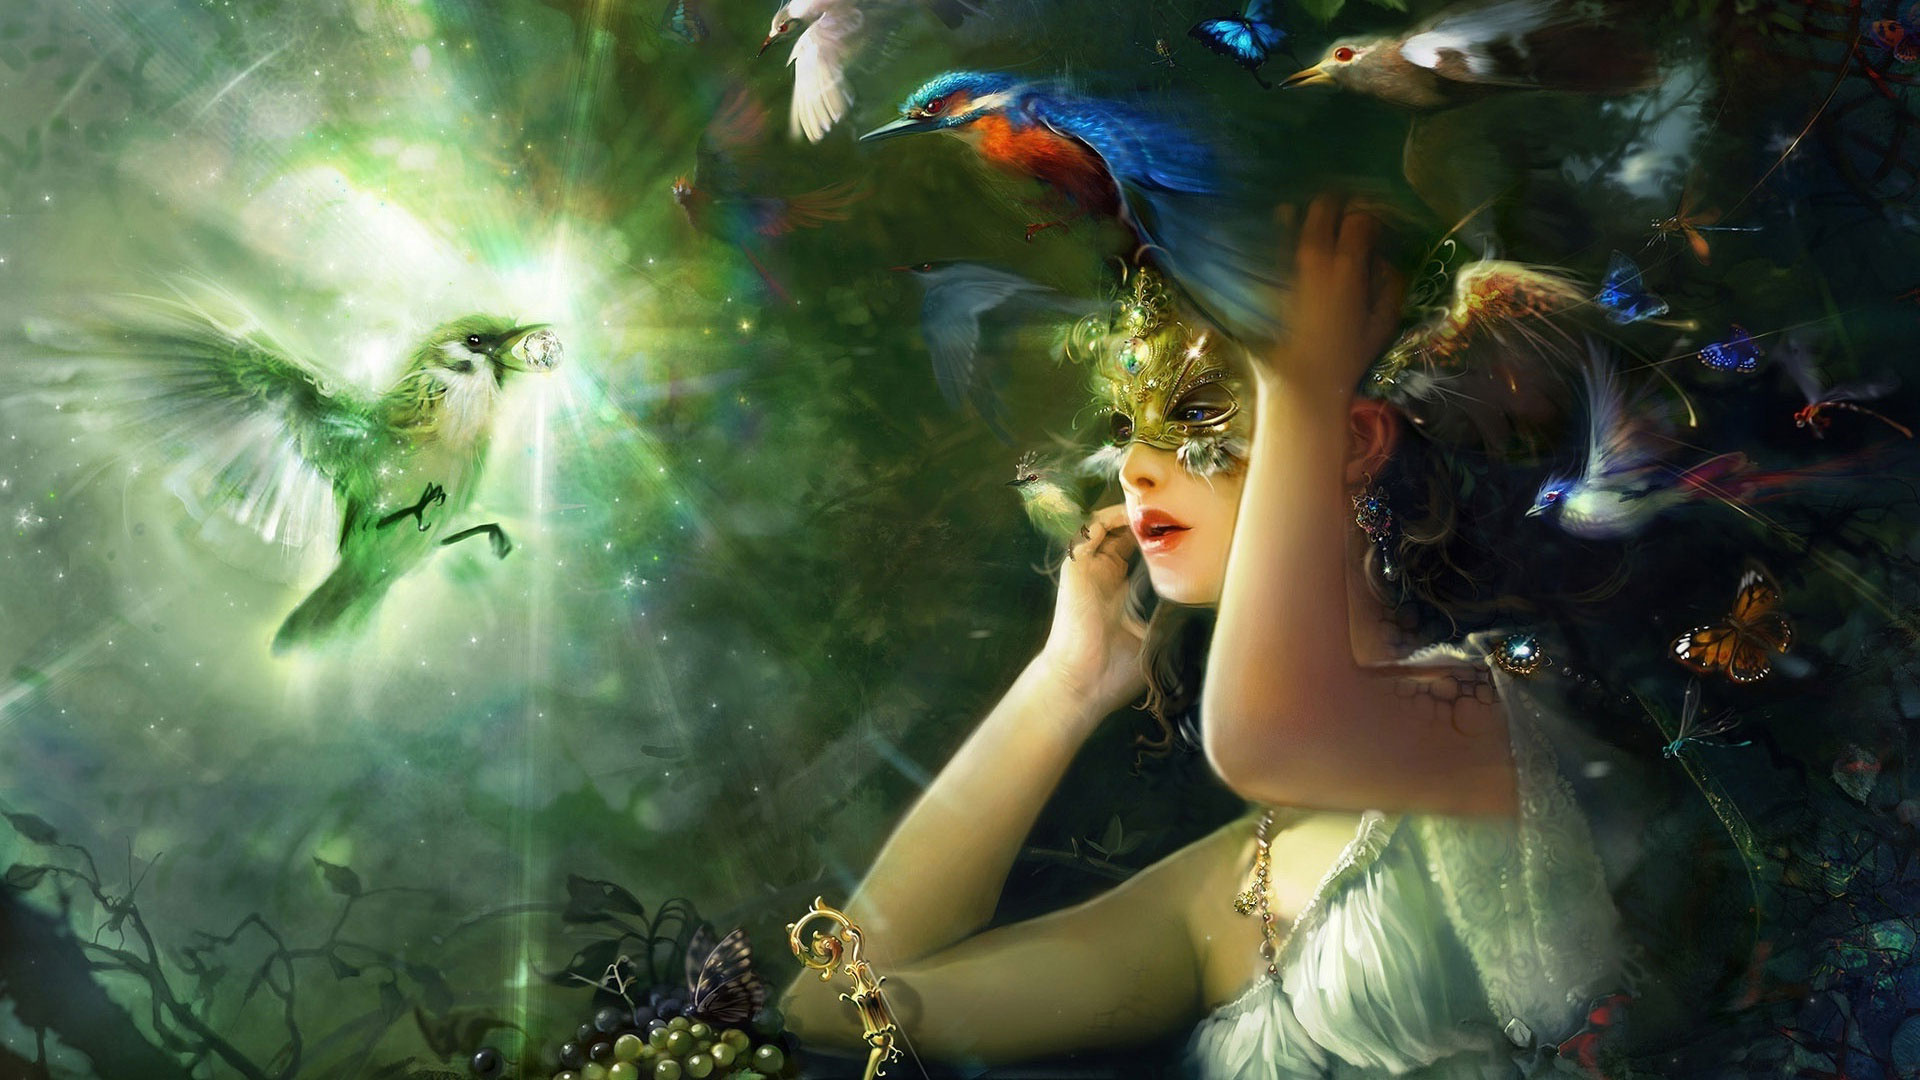 Fantasy - Women  Grapes Butterfly Kingfisher Bird Mask Girl Woman Wallpaper